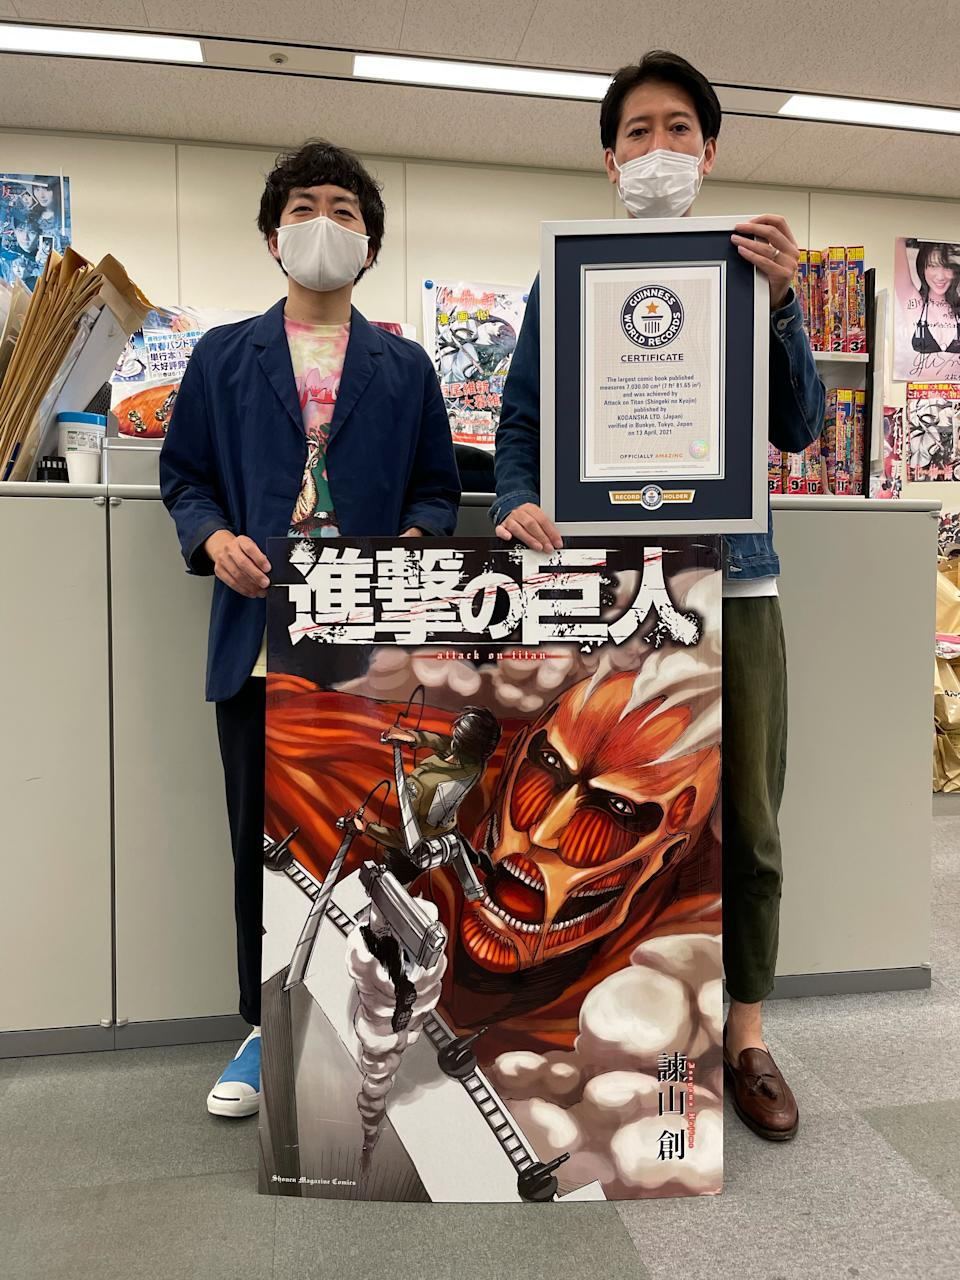 Attack On Titan giant manga is officially the world's largest comic book published. (Photo: Twitter/GWRJapan)